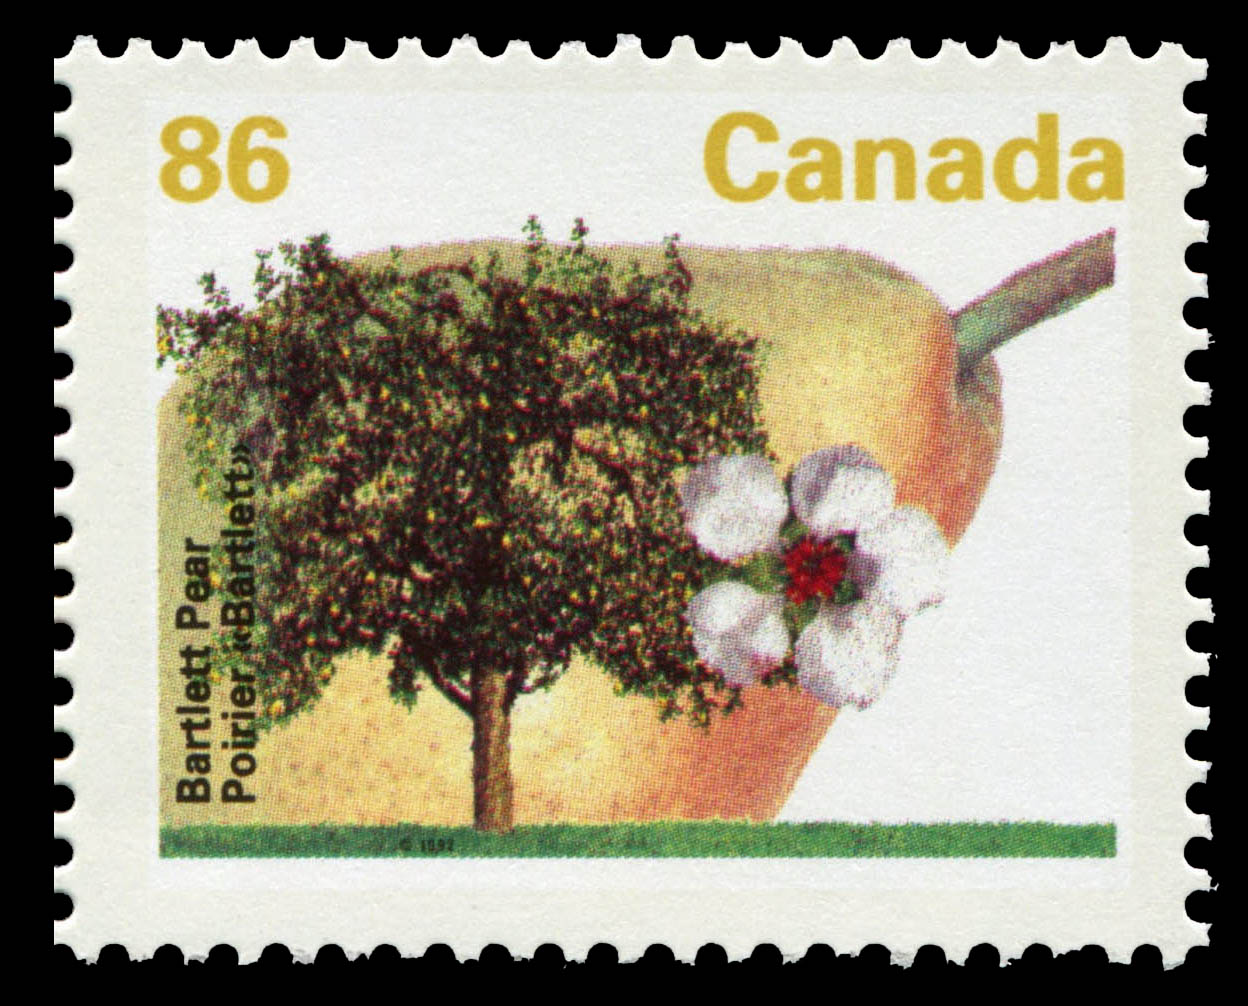 Bartlett Pear Canada Postage Stamp | Fruit Trees